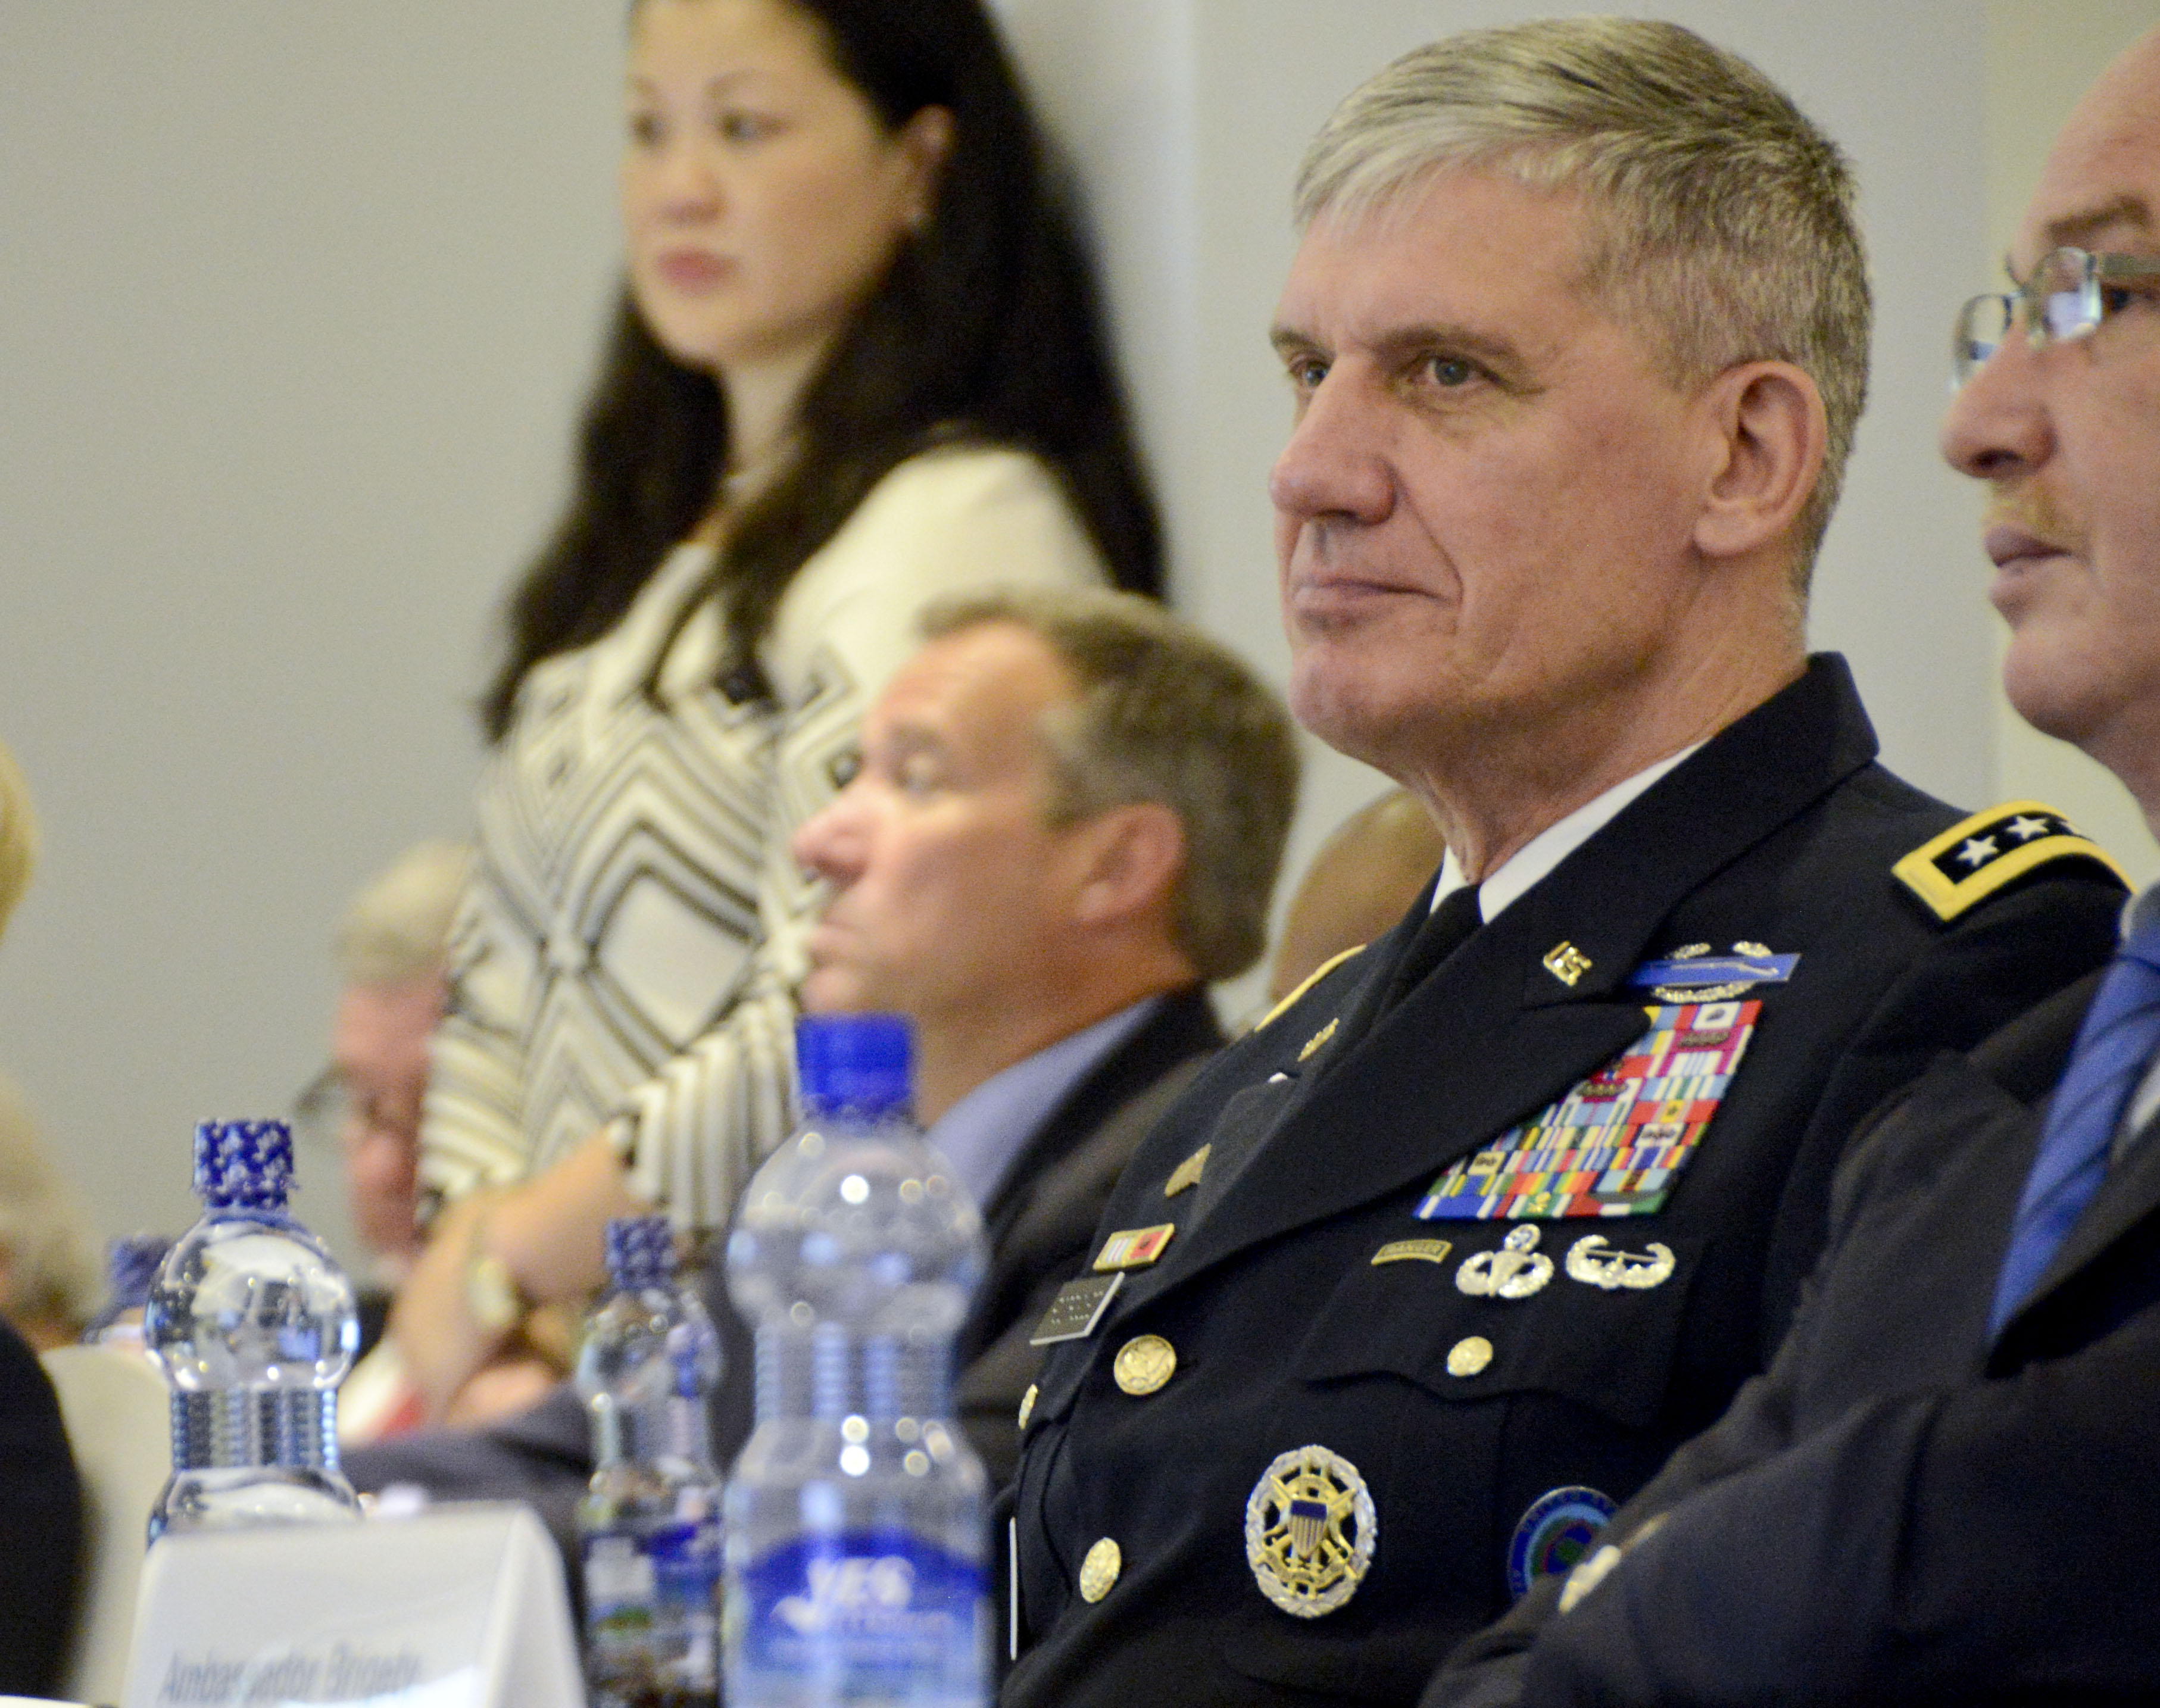 Gen. David Rodriguez, commander of U.S. Africa Command, listens to opening remarks during the Africa Logistics Forum in Addis Ababa, Ethiopia, June 23, 2015. Logisticians from 36 African nations and international partners attended the forum.